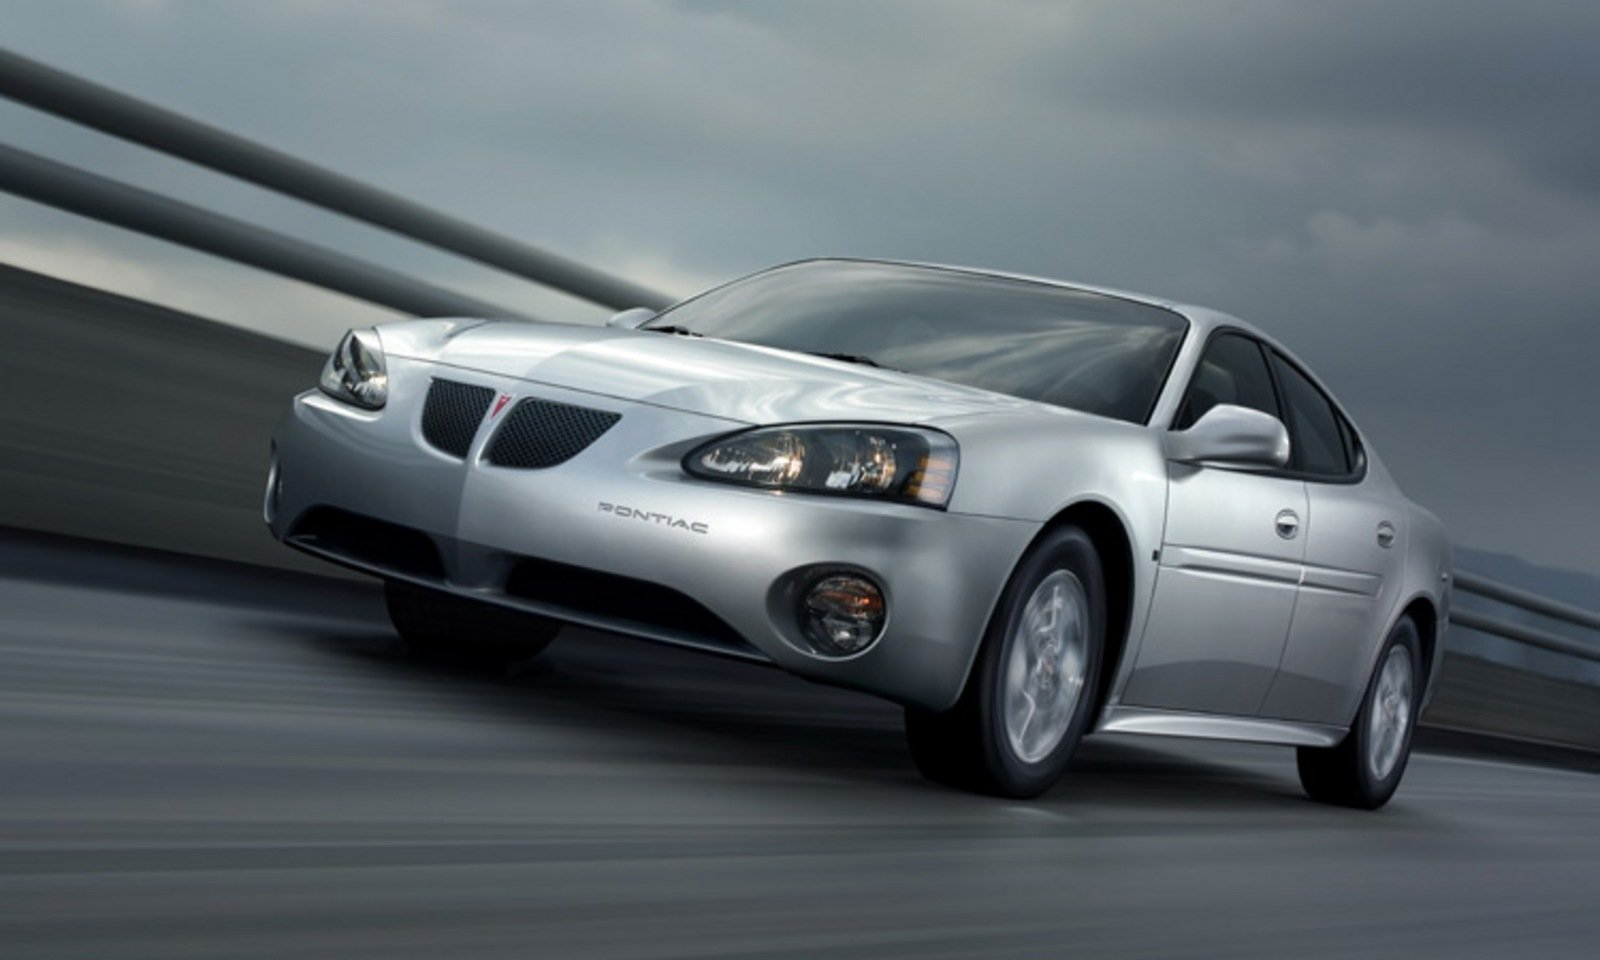 2006 Pontiac Grand Prix Review Top Speed